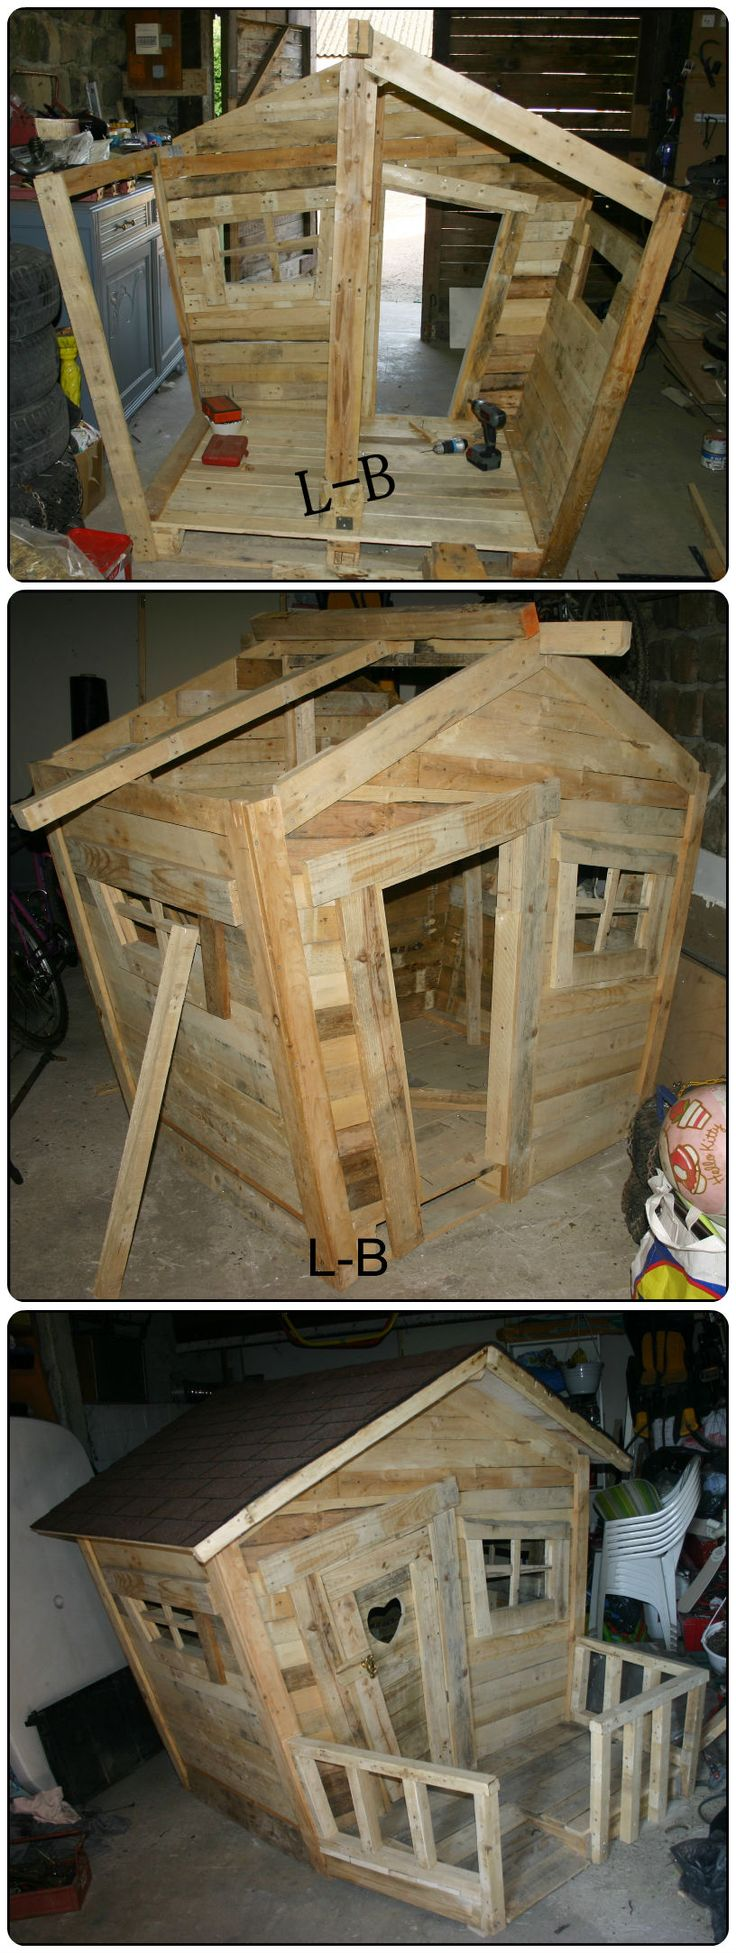 Pallet kid's hut #PalletHut